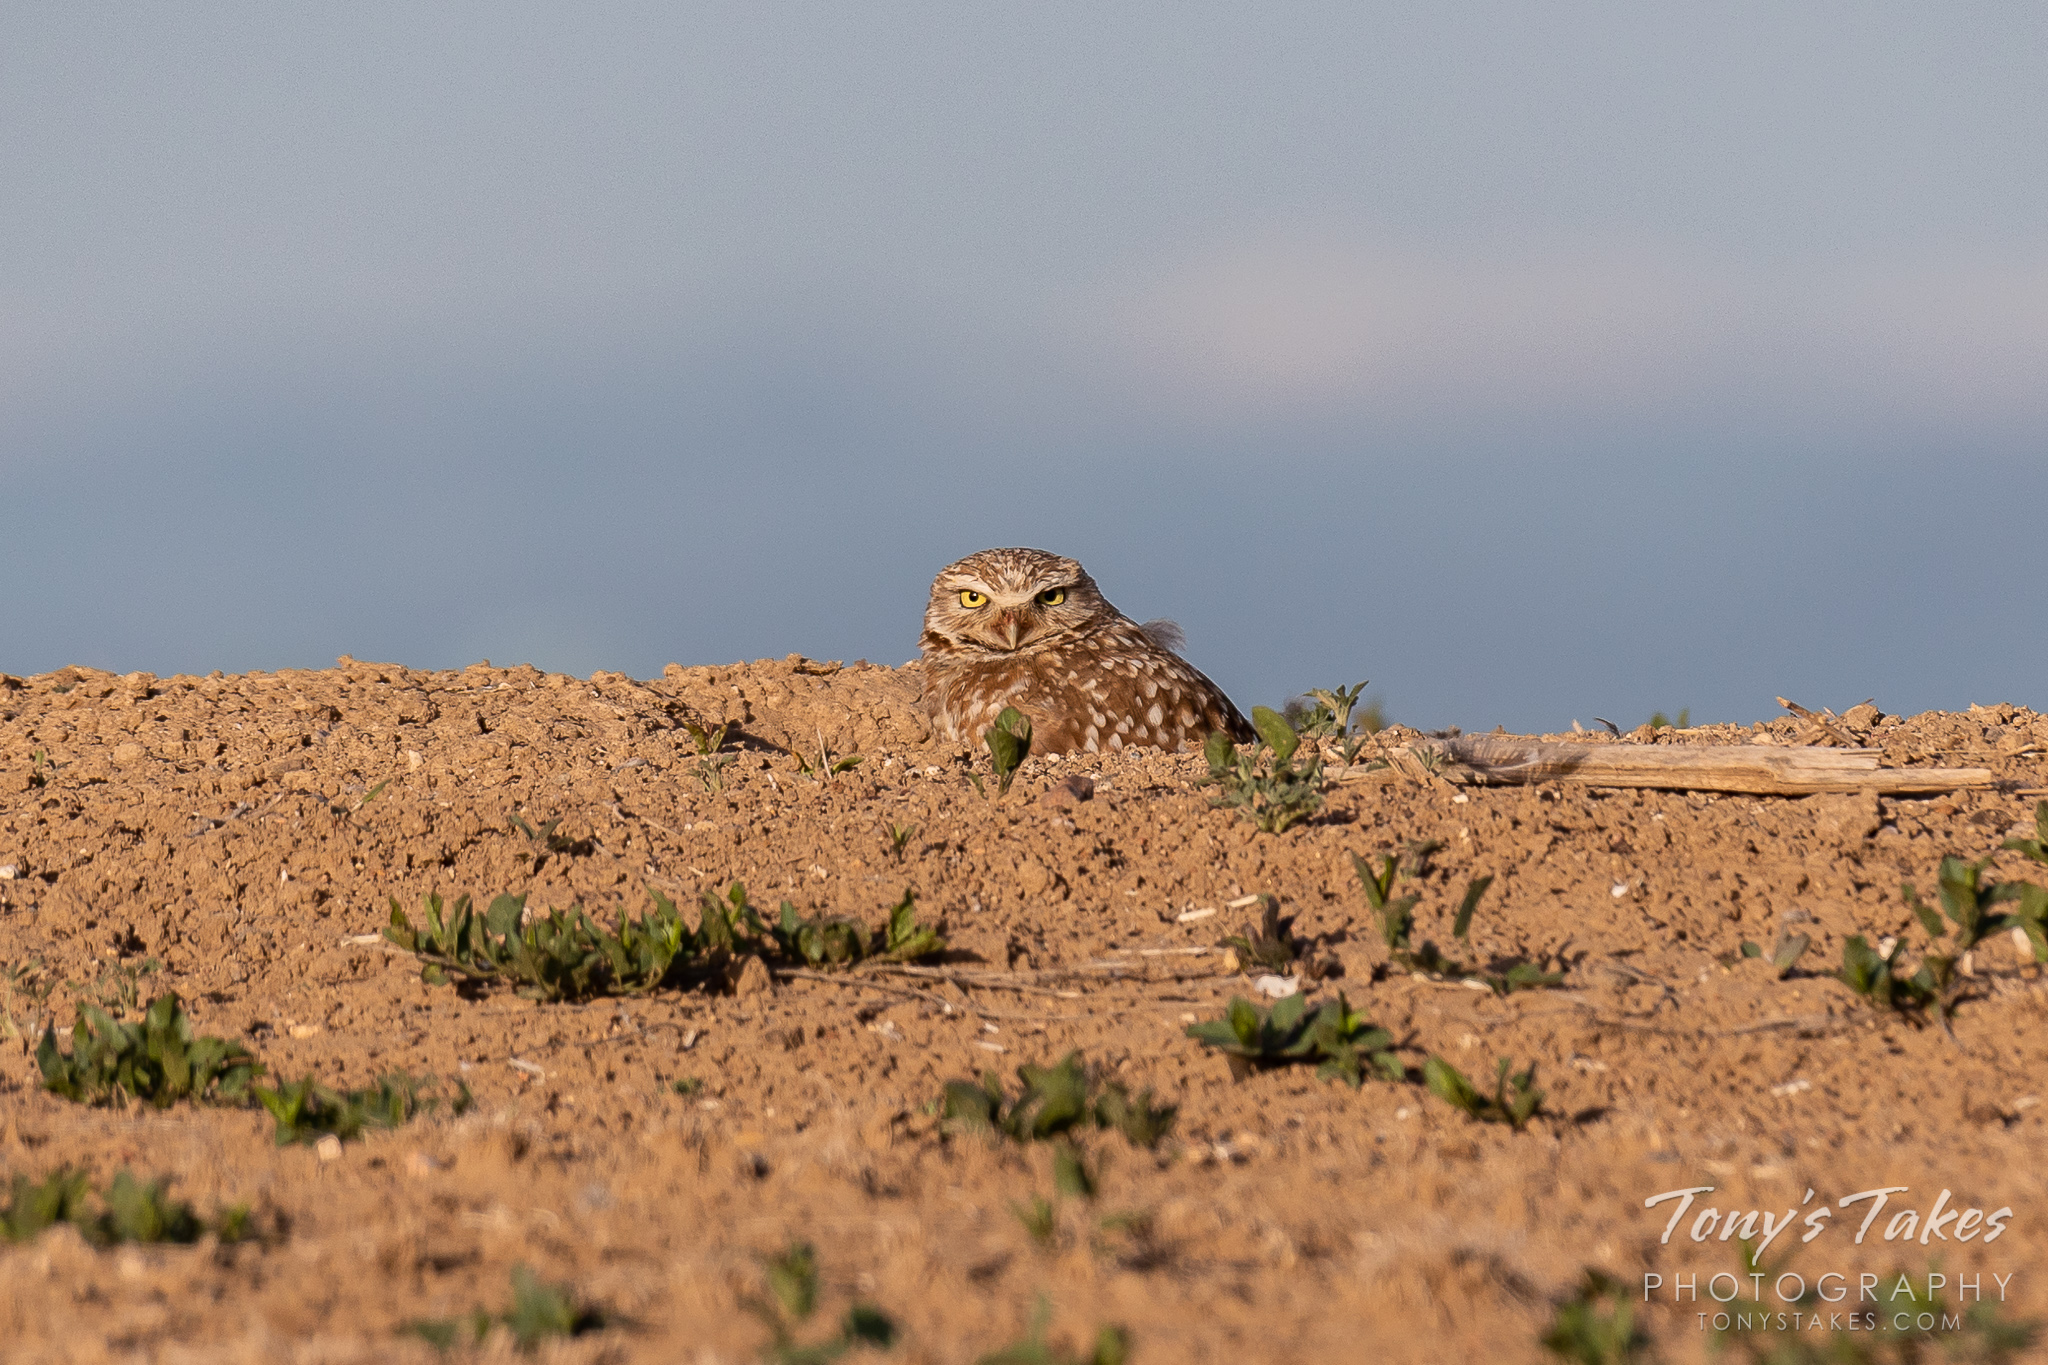 Burrowing owl hunkers down and keeps close watch on the photographer